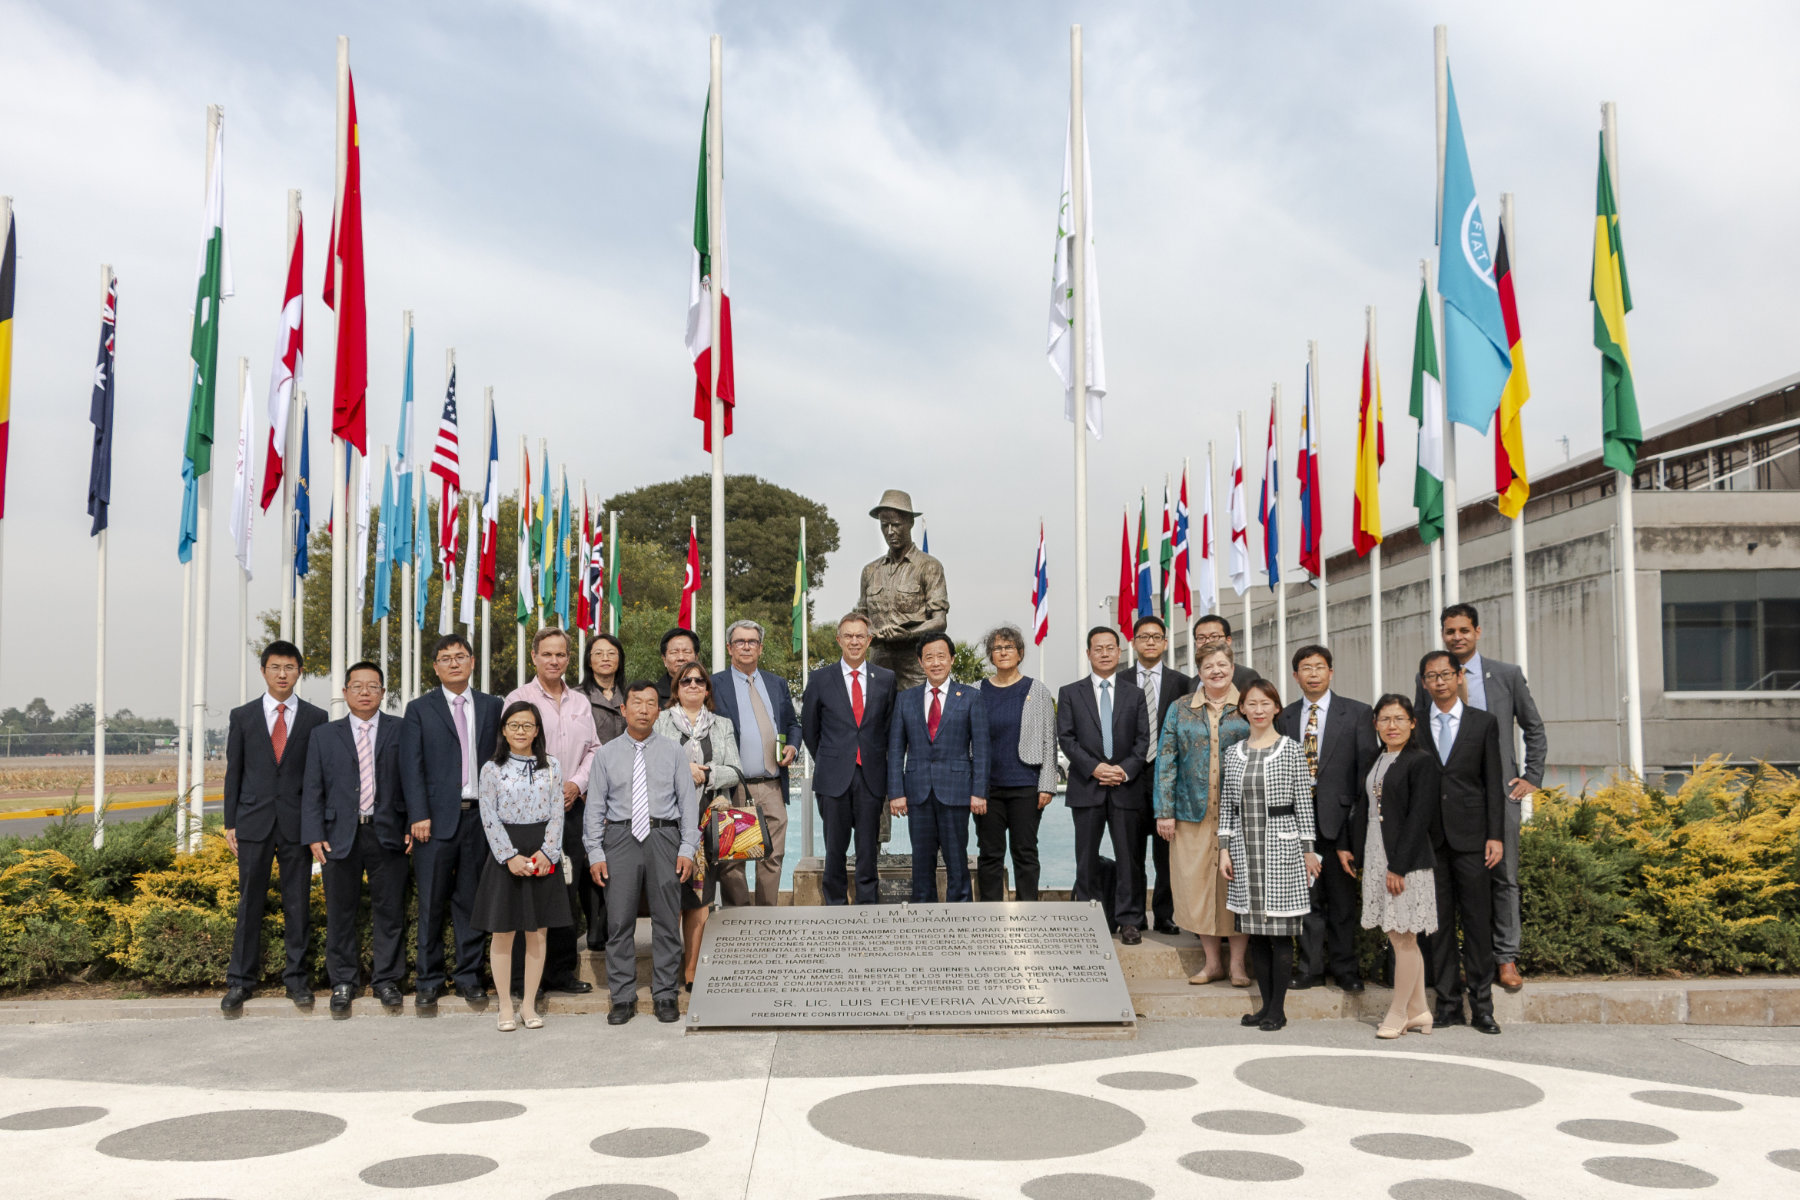 Vice minister Qu (center) and his delegation stand for a group photo with CIMMYT's leadership and Chinese students and scientists. (Photo: Gerardo Mejía/CIMMYT)